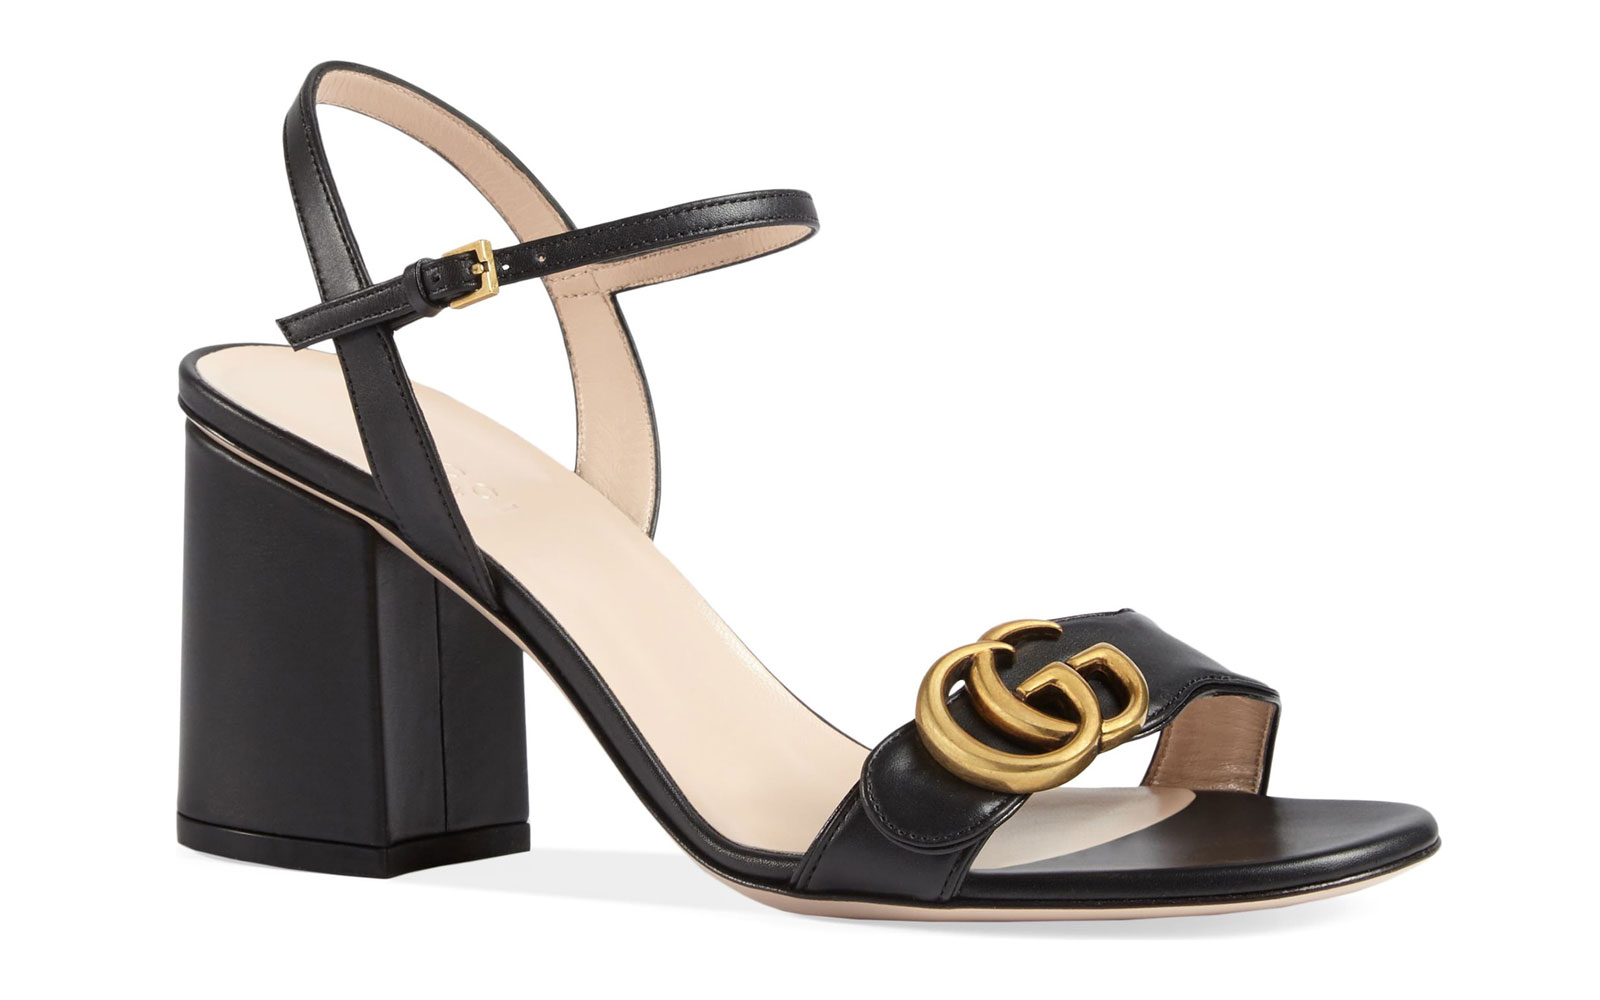 Black leather heeled sandal